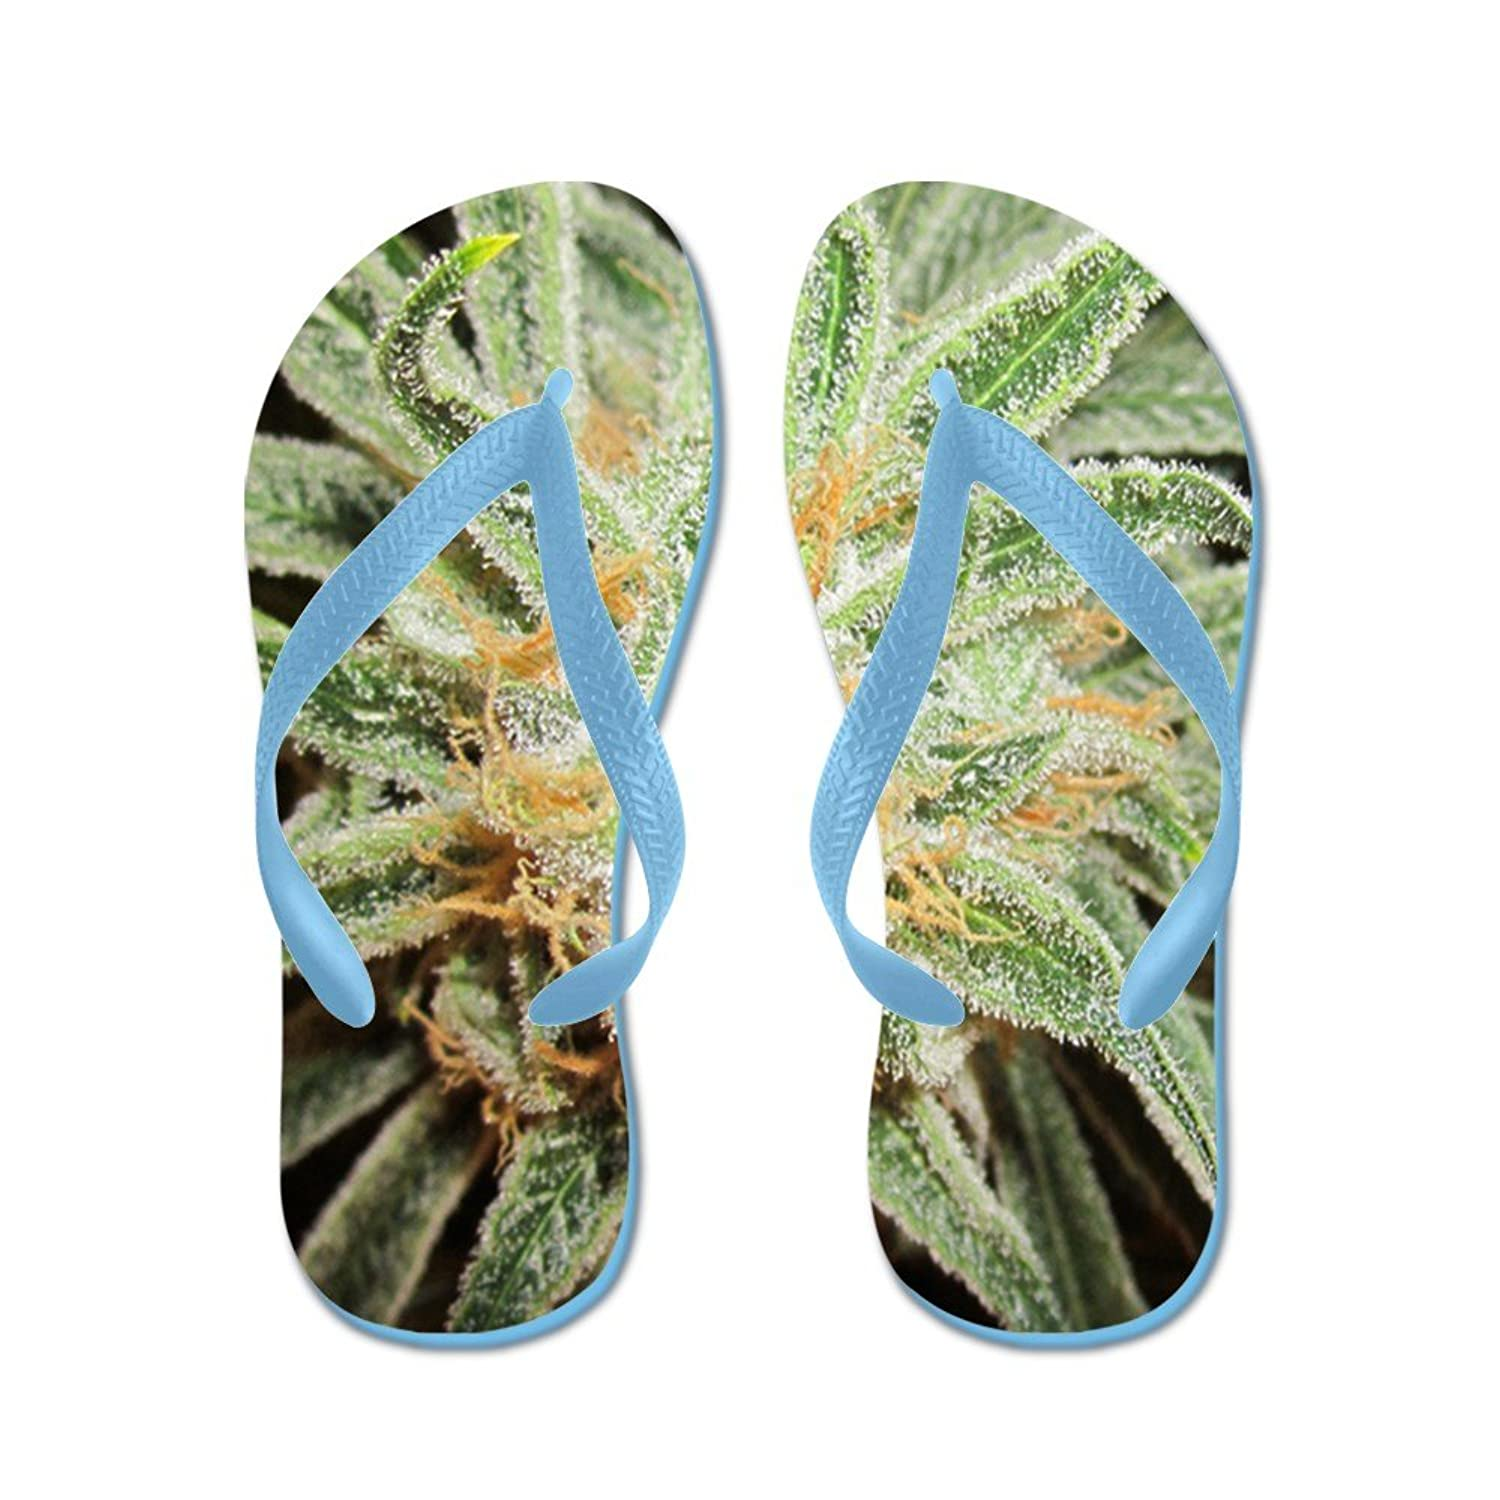 627085a04 CafePress Cannabis Sativa Flower - Flip Flops